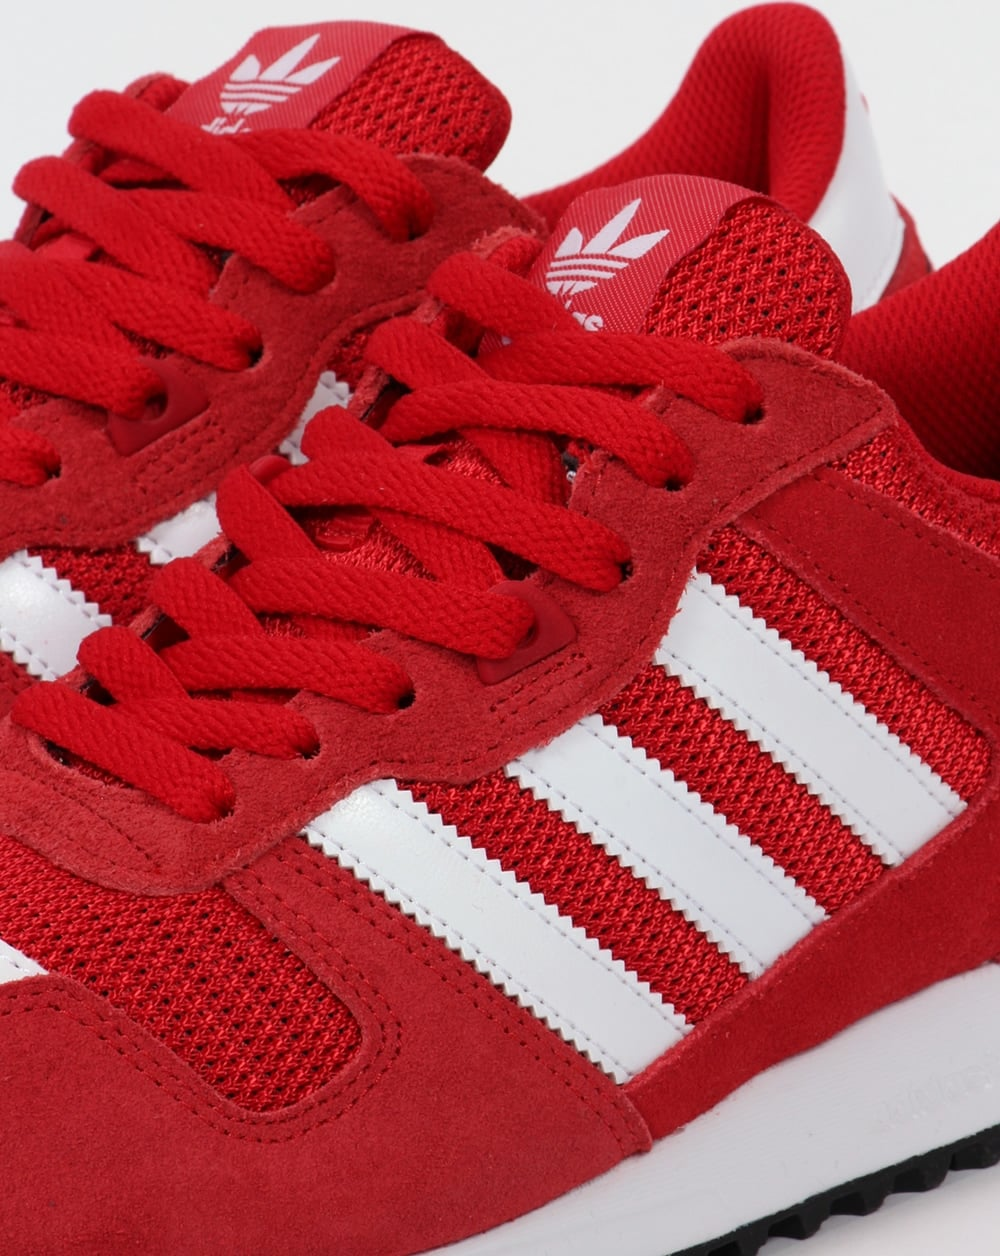 8f37459911777 Adidas ZX 700 Trainers Red White